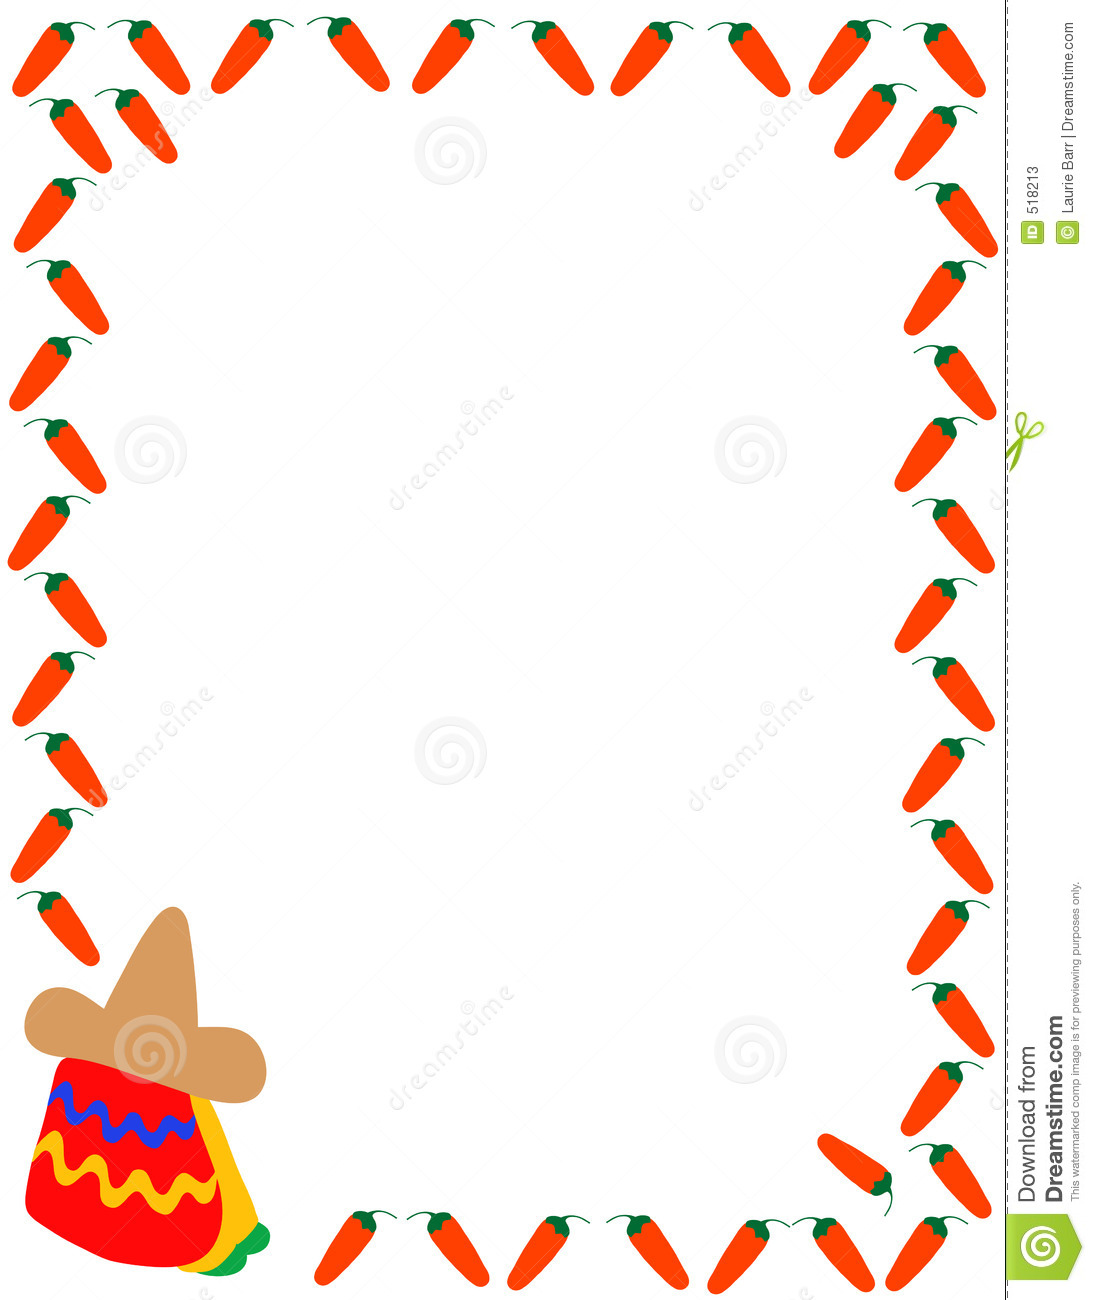 1095x1300 Spain Clipart Spanish Border Free Collection Download And Share